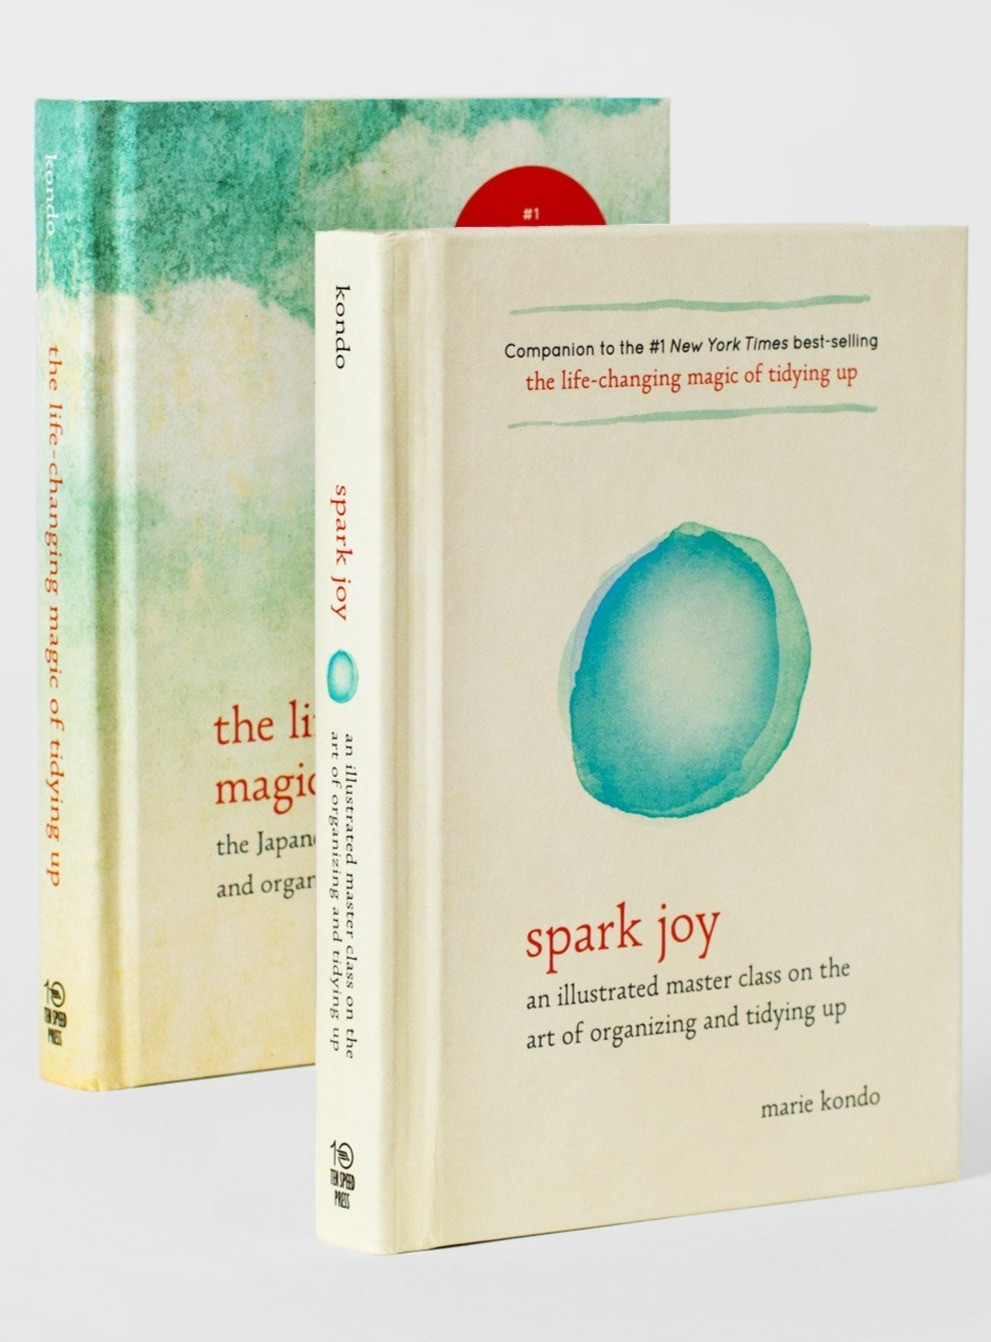 Marie Kondo's book collection Spark Joy and The Life Changing Magic of Tidying Up.